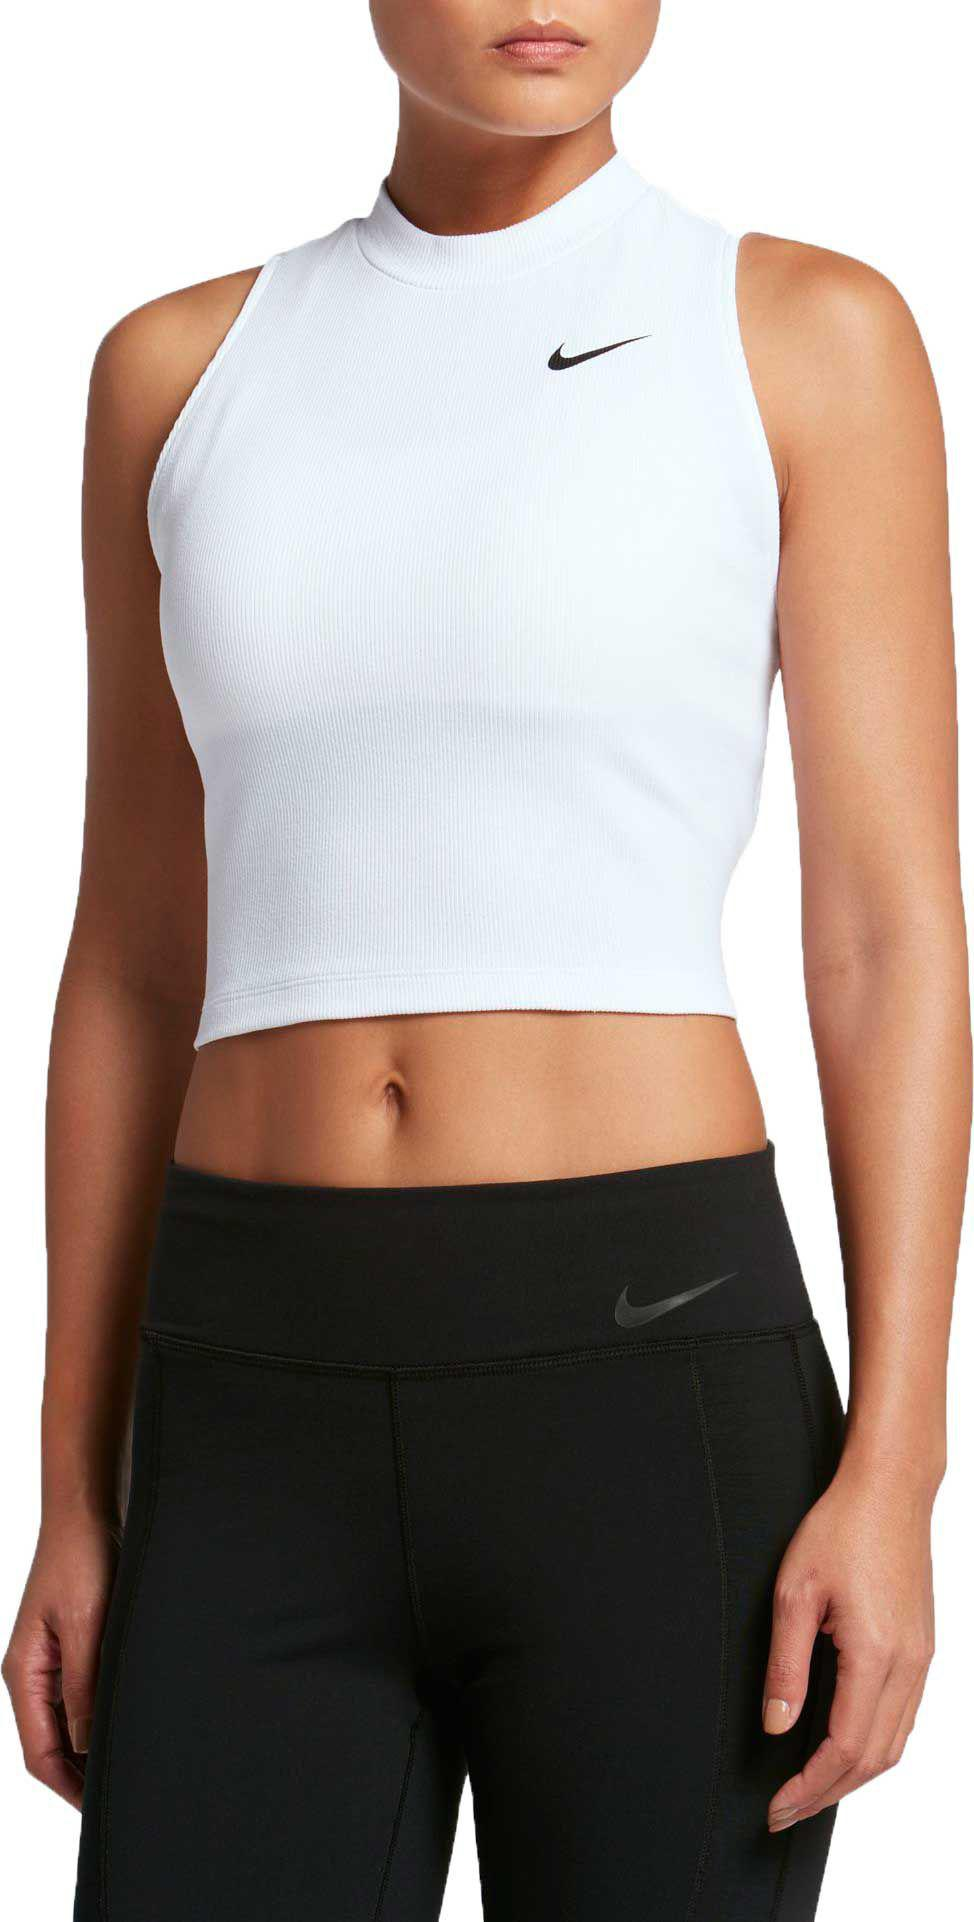 c383d993348 Nike Solid Crop Tank Top in White - Lyst